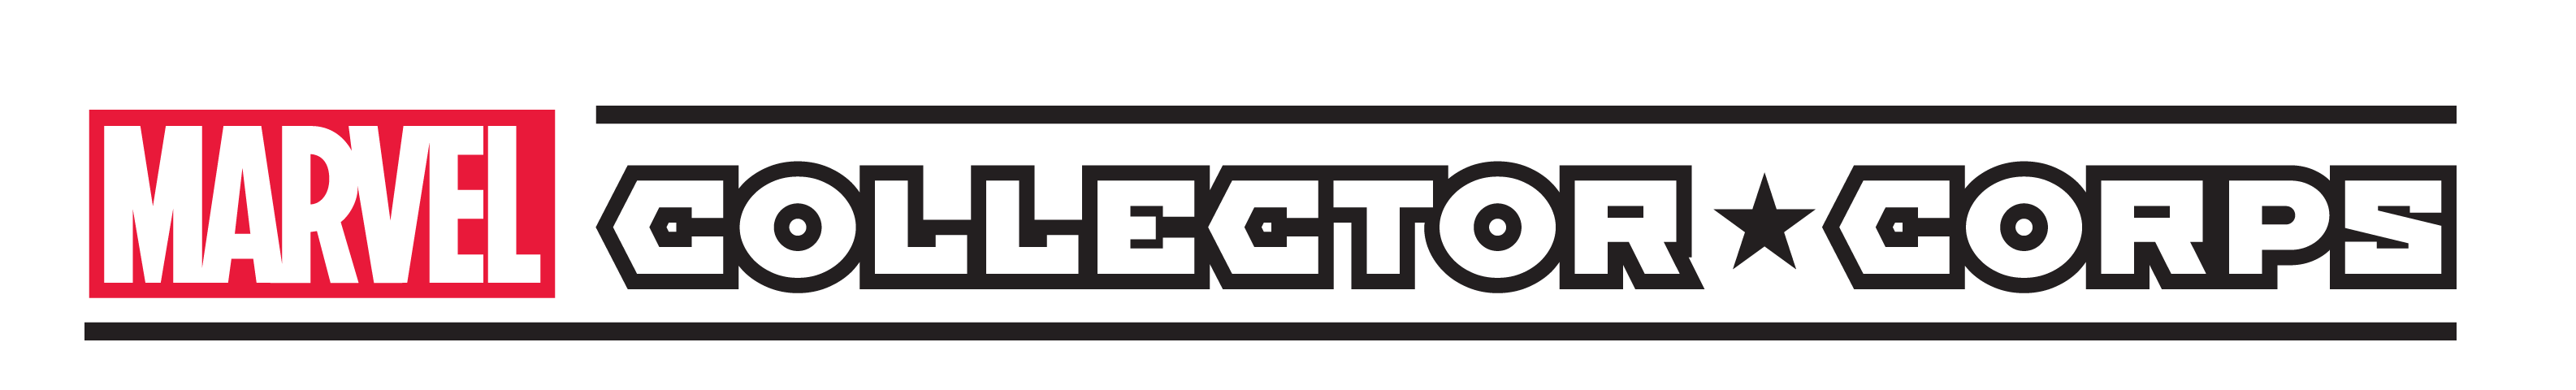 CollectorCorps logo horizontal